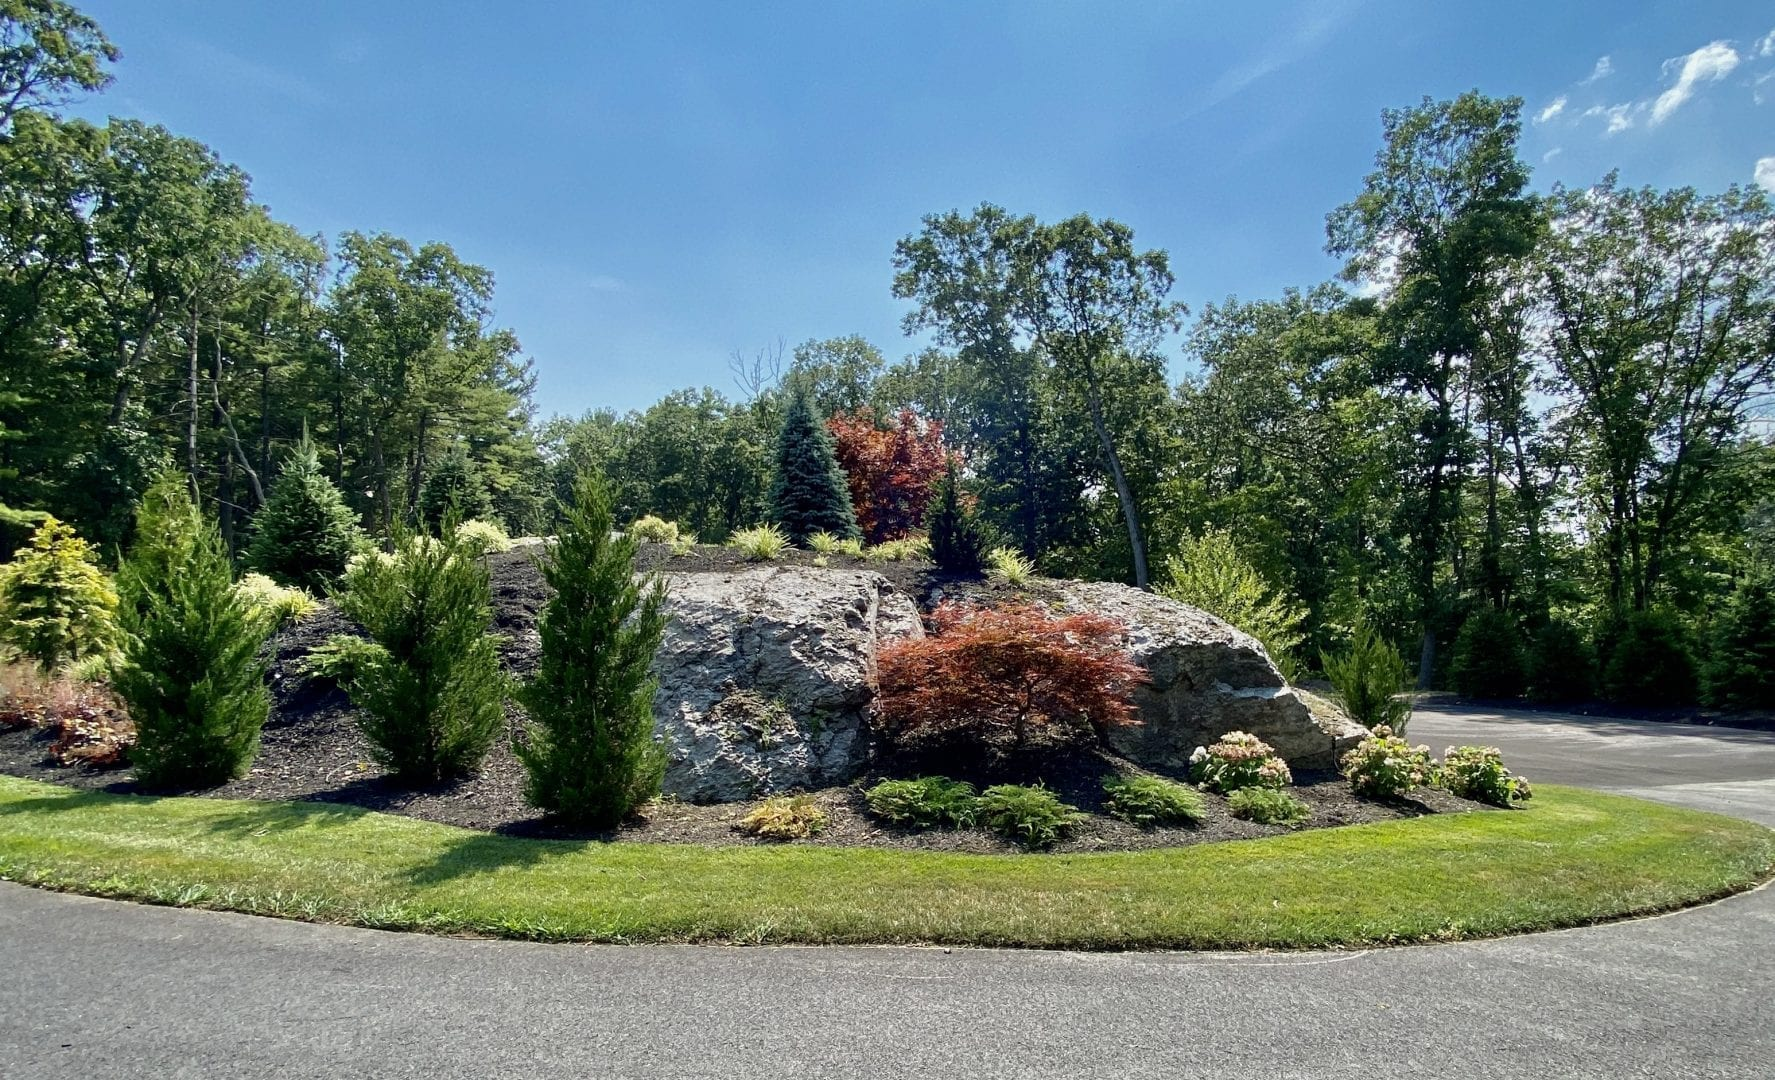 A picture of a recently landscaped cul de sac, with trees and shrubs on top of it.